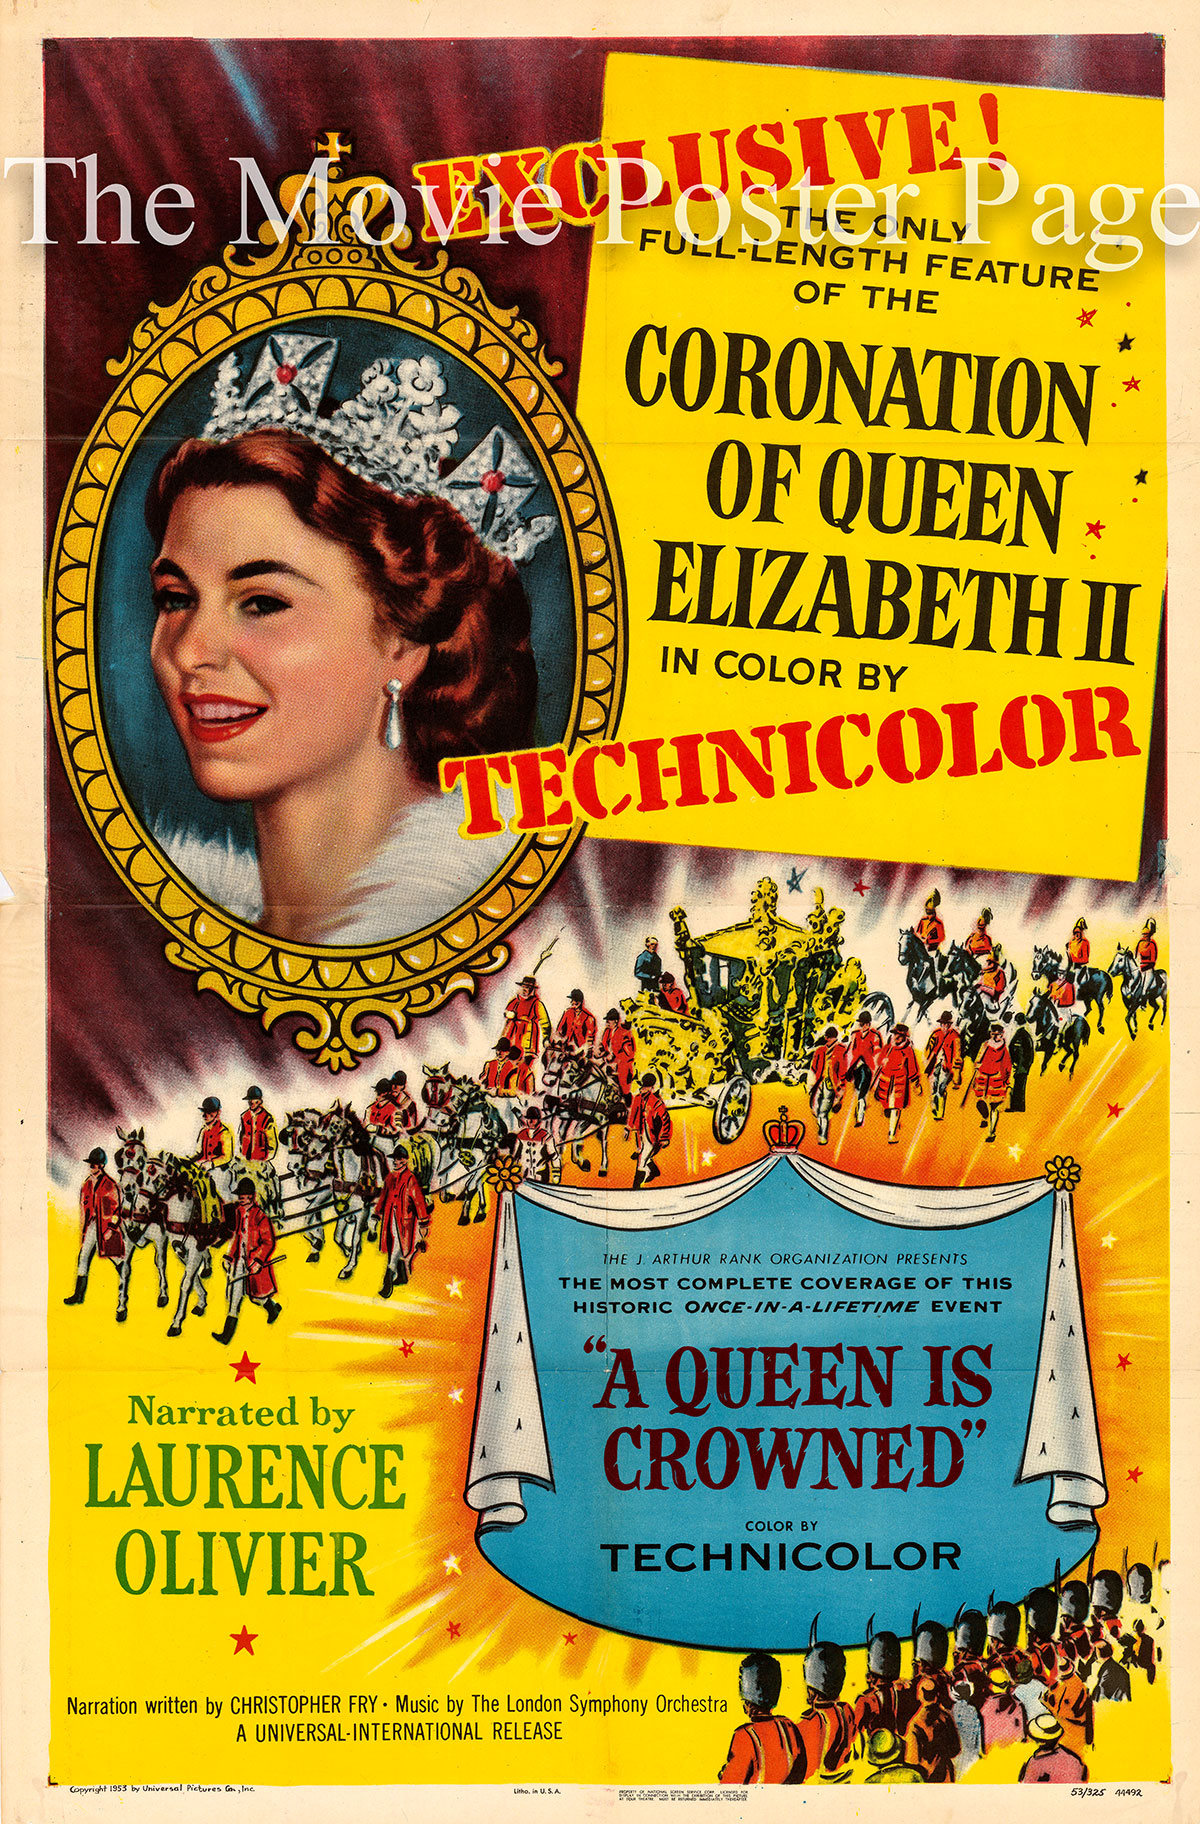 Pictured is a US one-sheet promotional poster for the 1953 film A Queen Is Crowned narrated by Laurence Olivier.